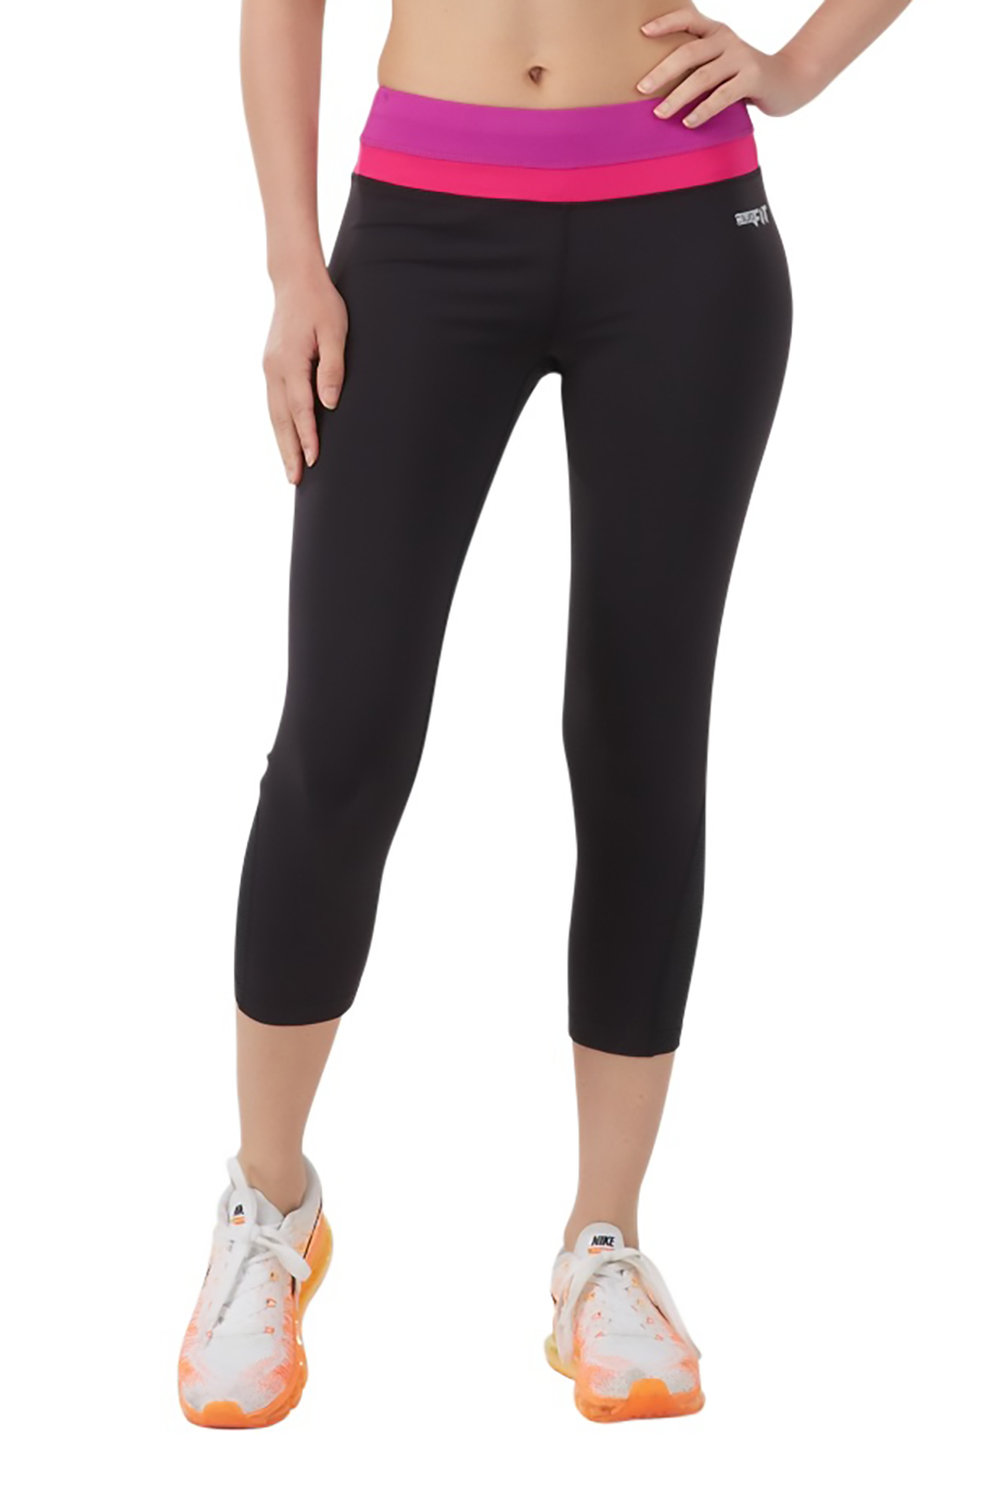 Athleisurewear Yoga Capri Leggings